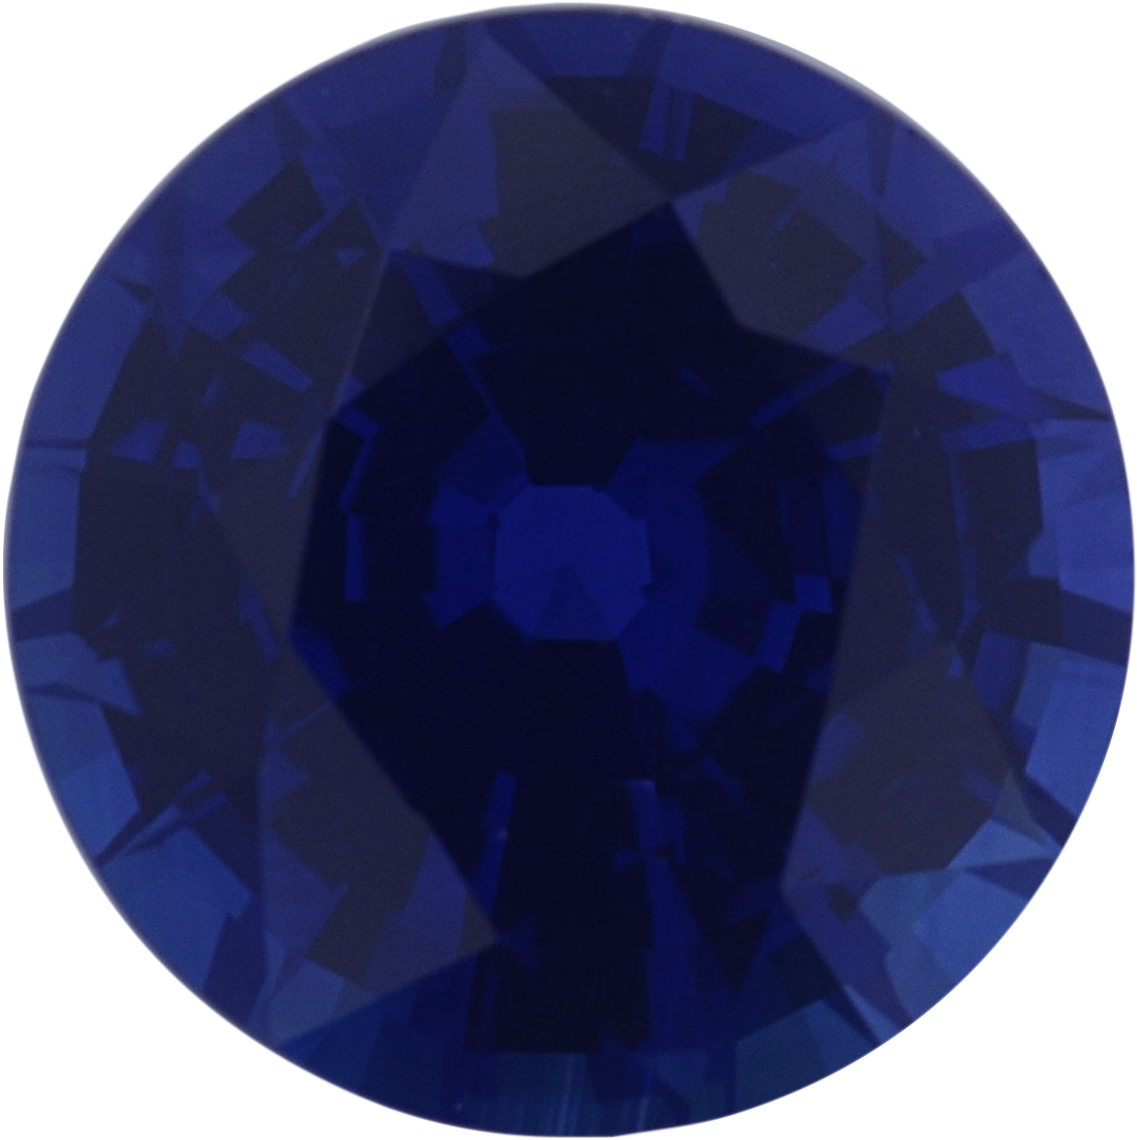 1.37 carats Blue Loose Sapphire Gemstone in Round Cut, 6.6 mm